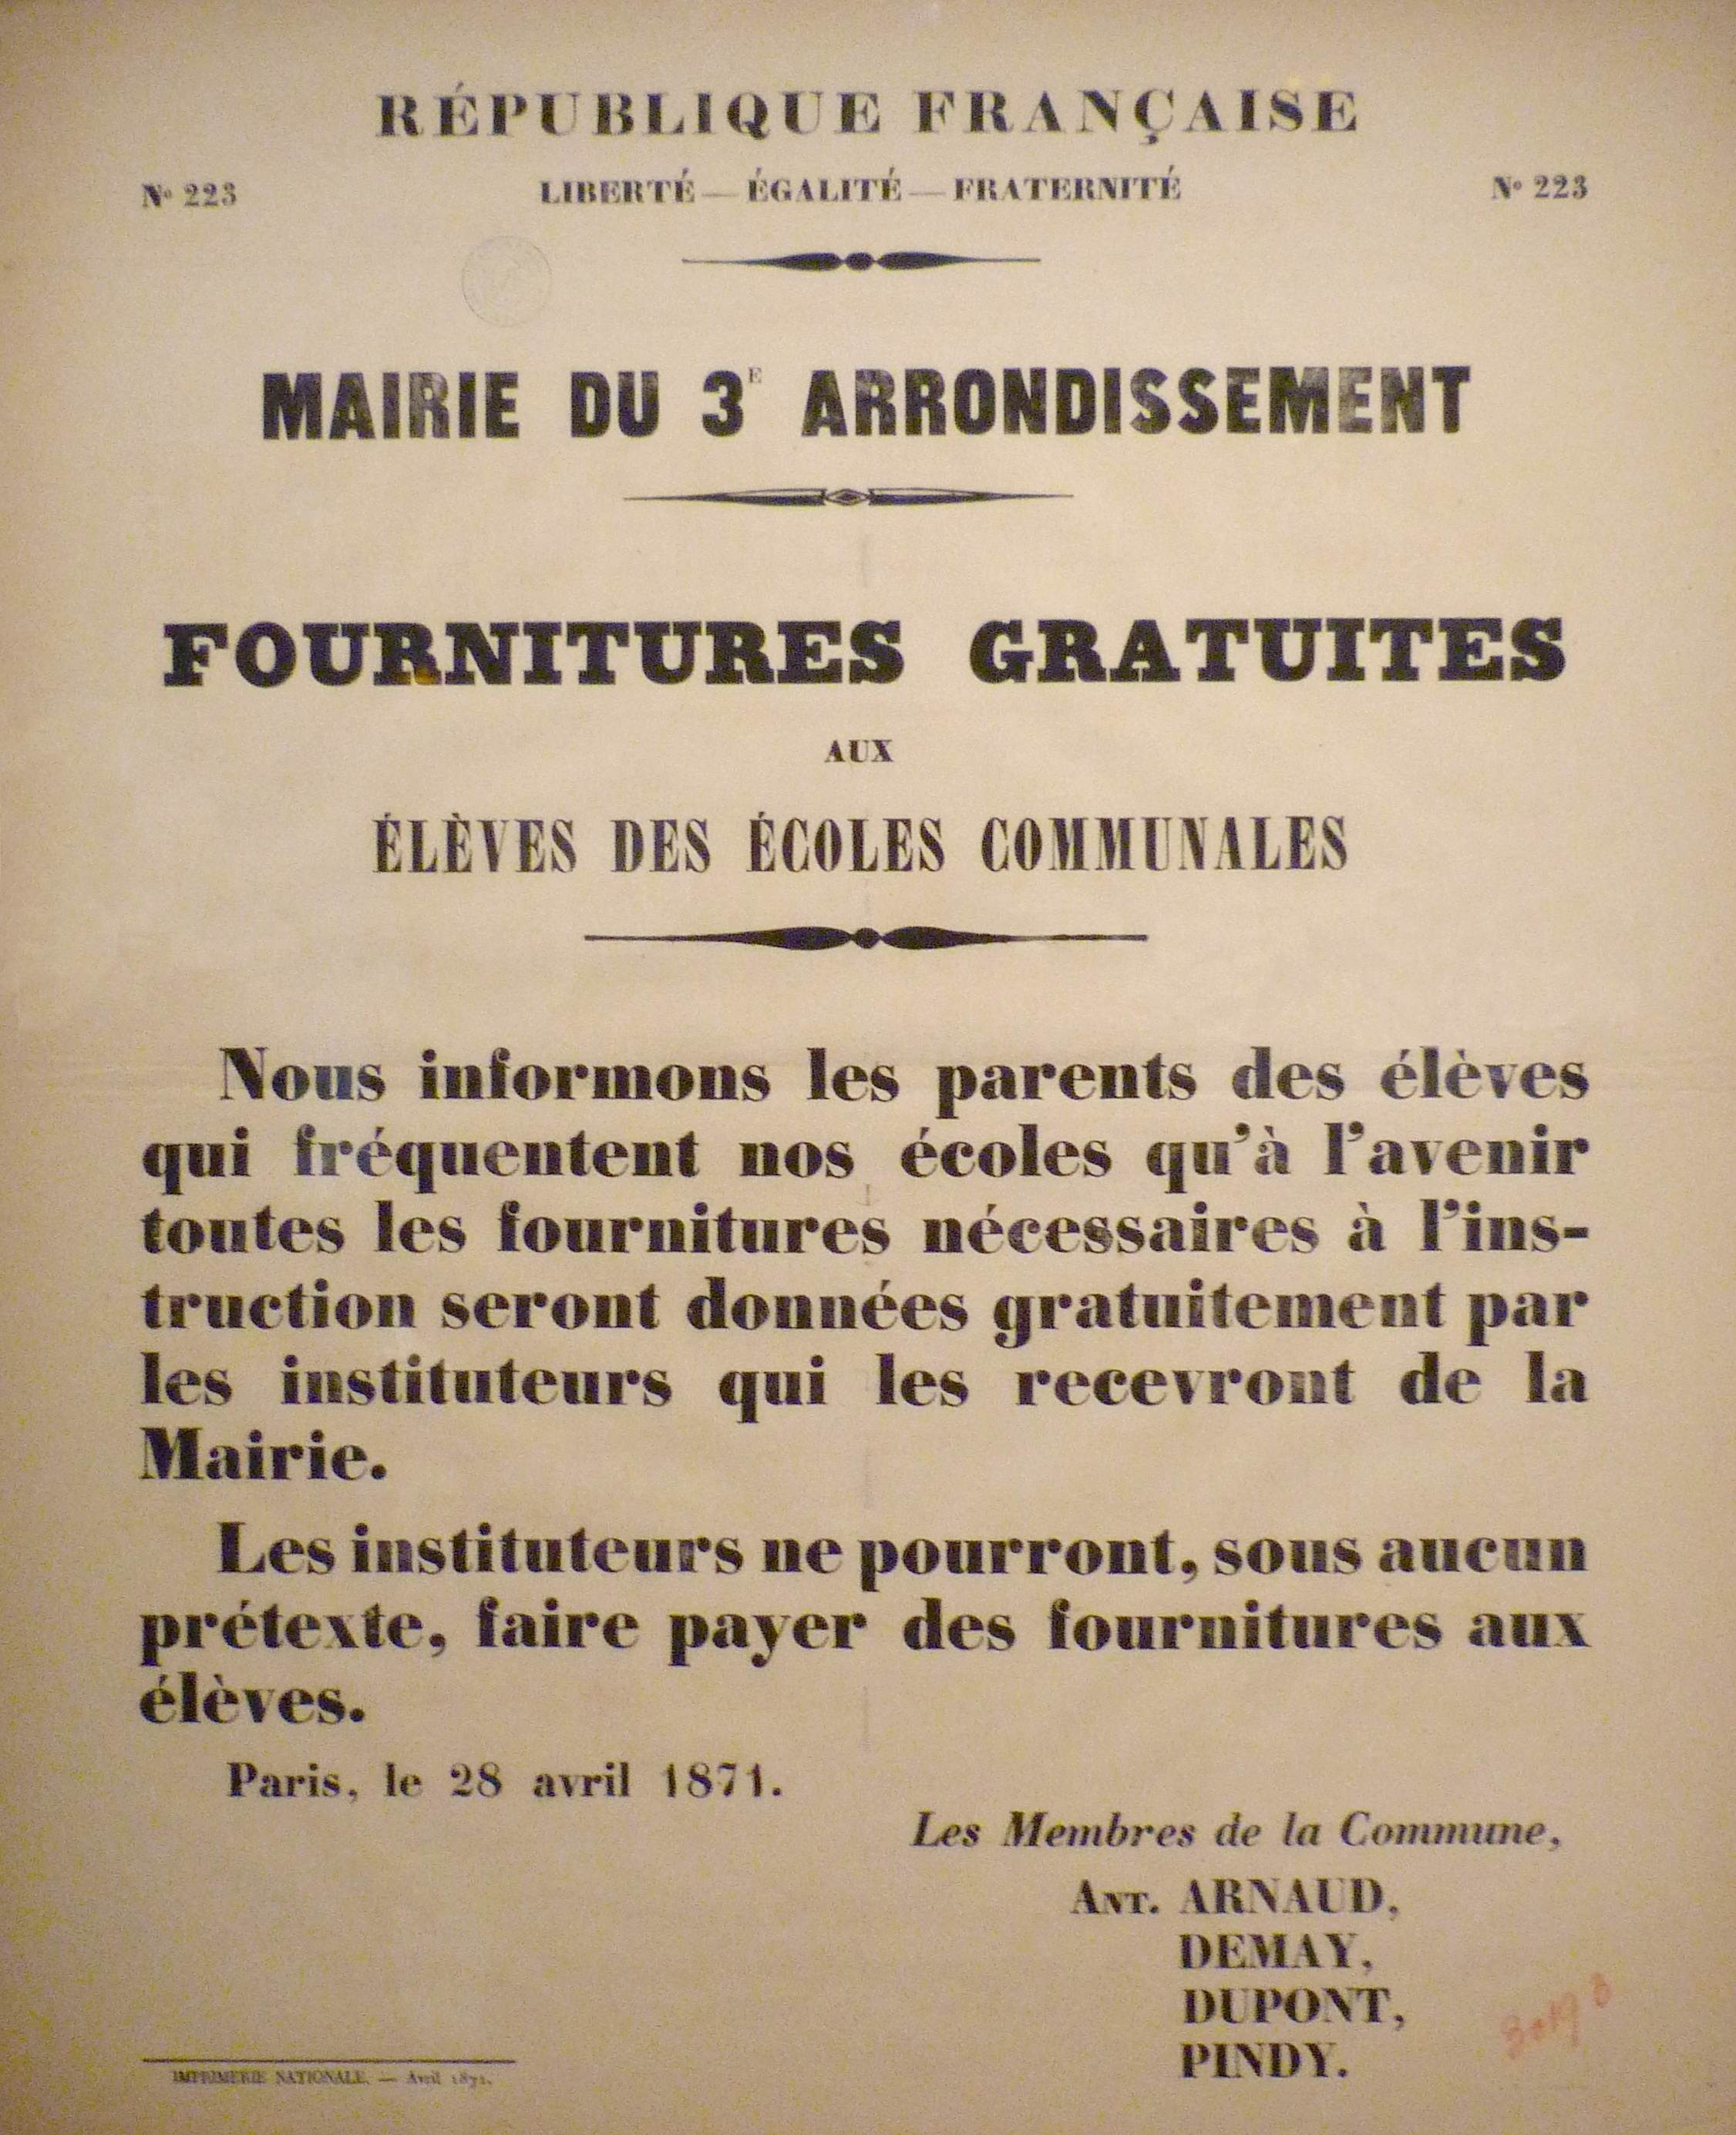 Filecommune De Paris Affiche Du 28 Avril 1871 Sur Les